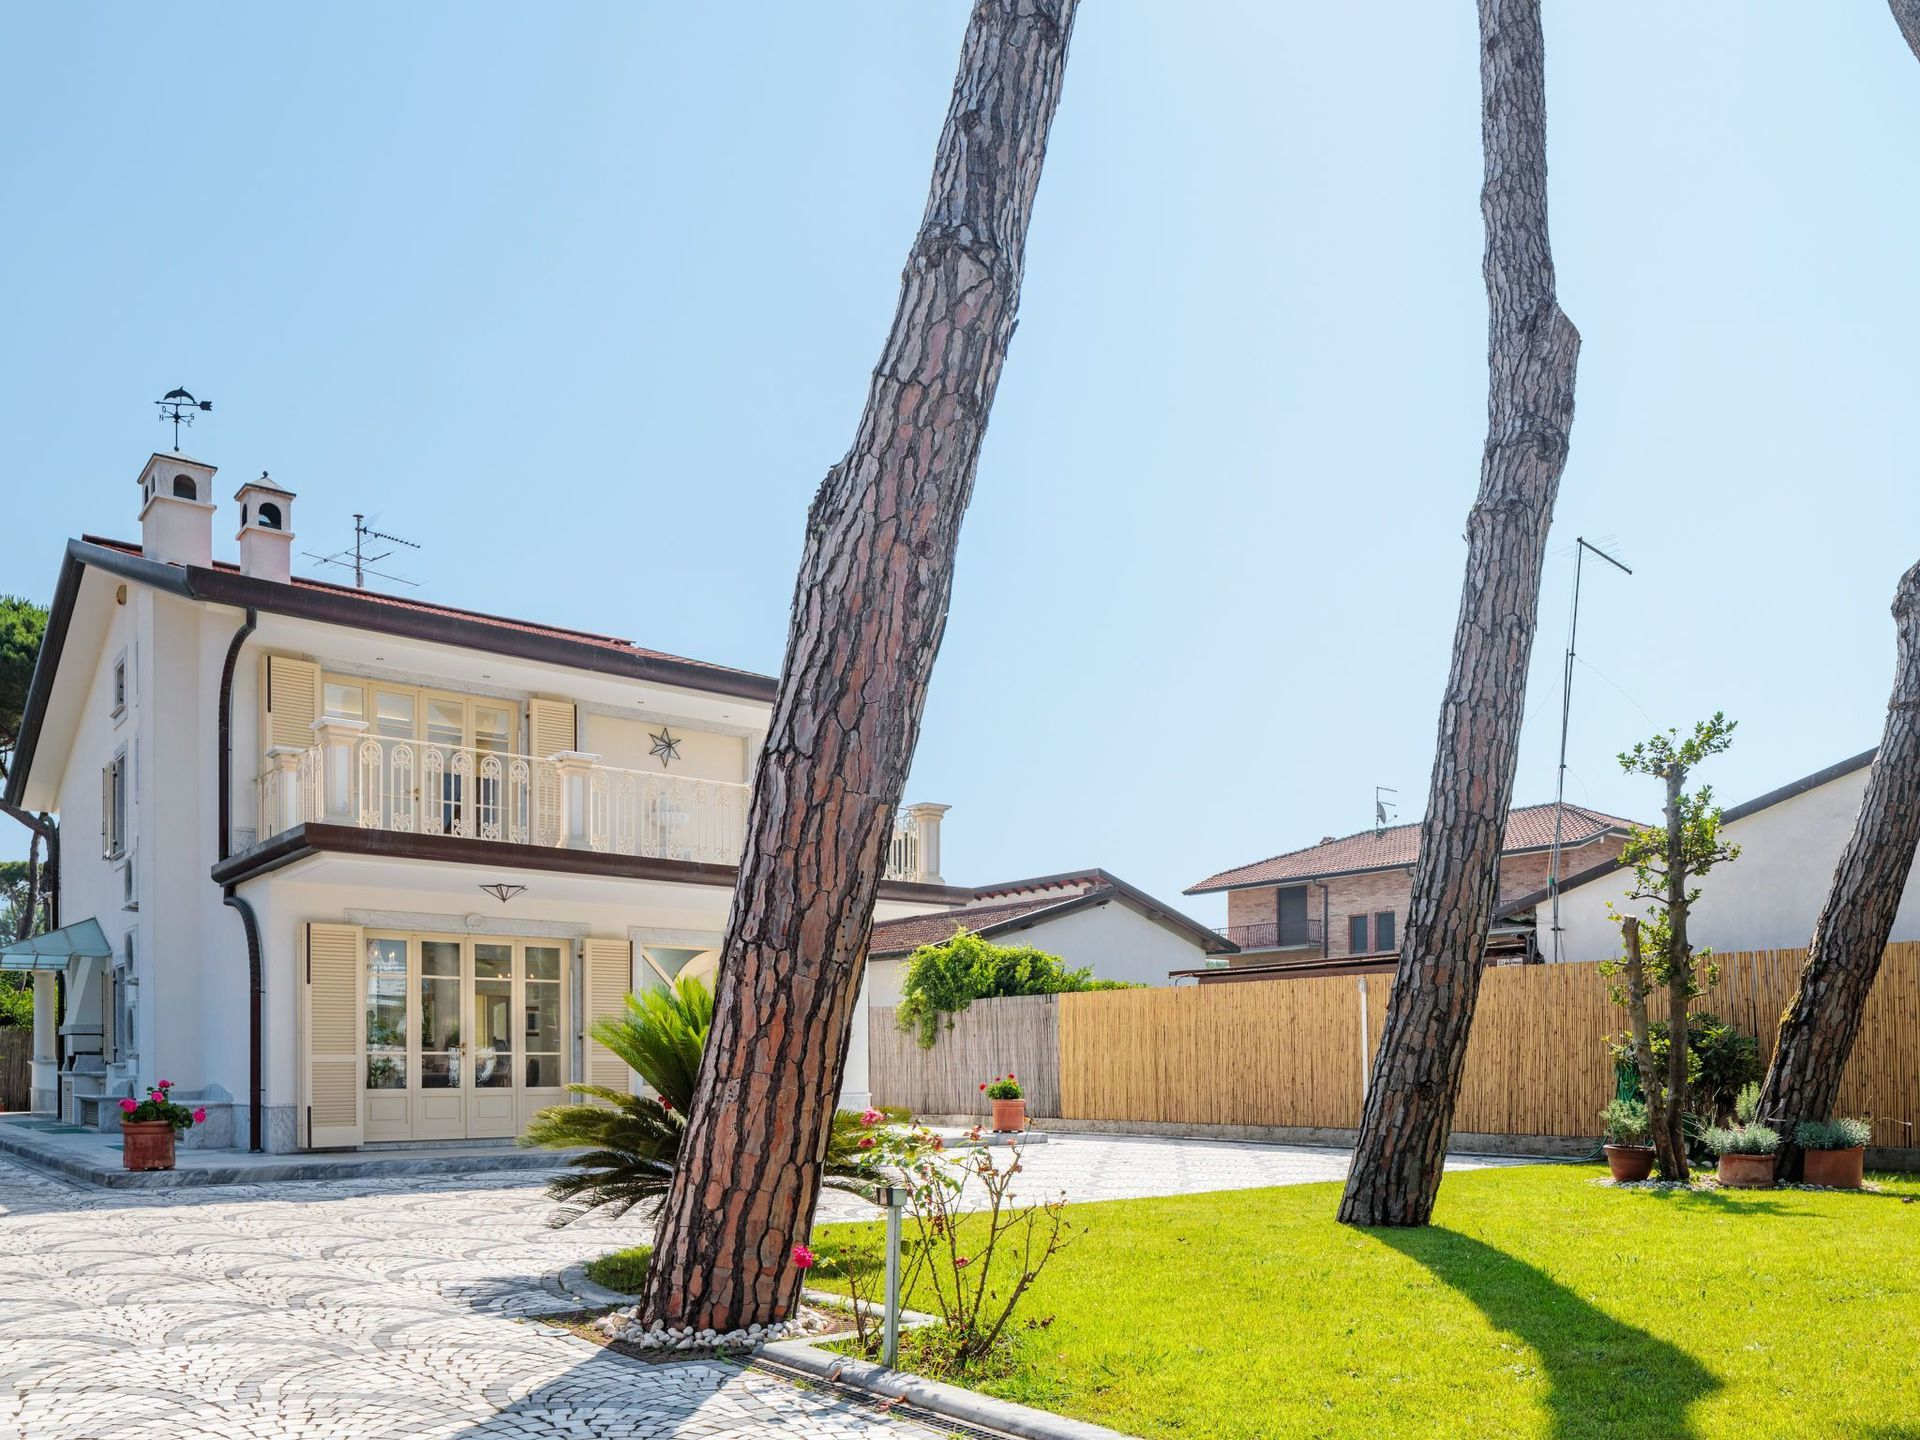 Italian Case Forte Dei Marmi verdeoro: villa that sleeps 11 people in 6 bedrooms, located